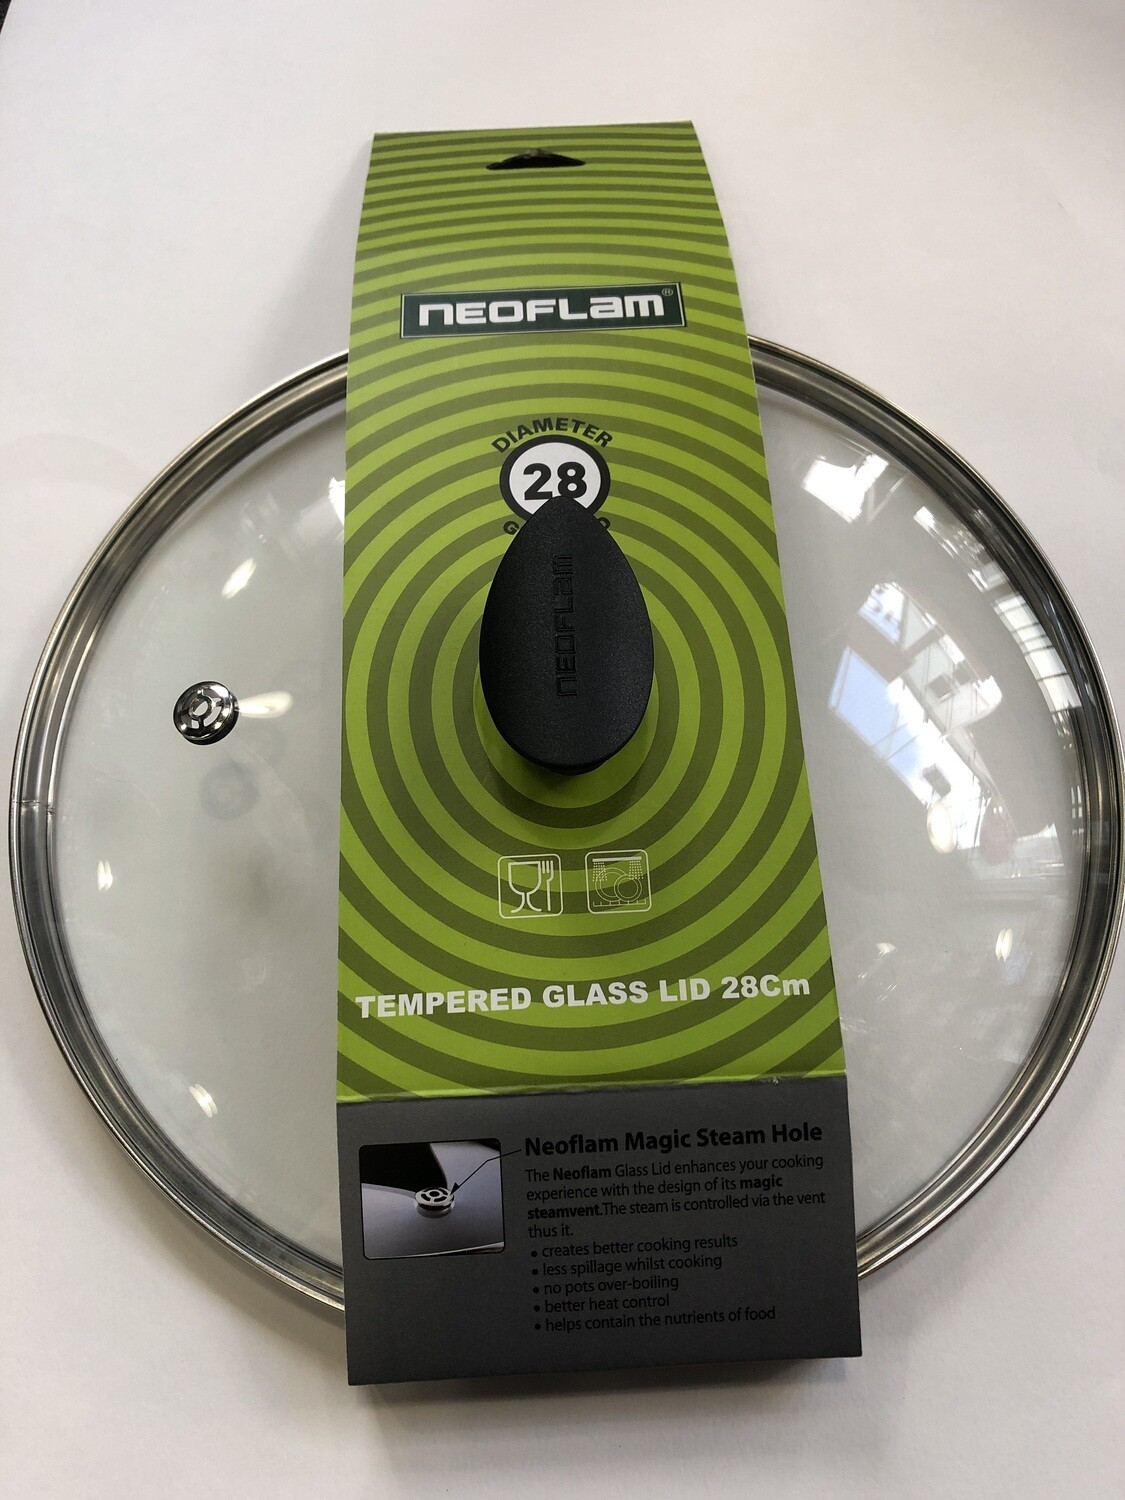 NEOFLAM - Tempered Glass Lid 28cm